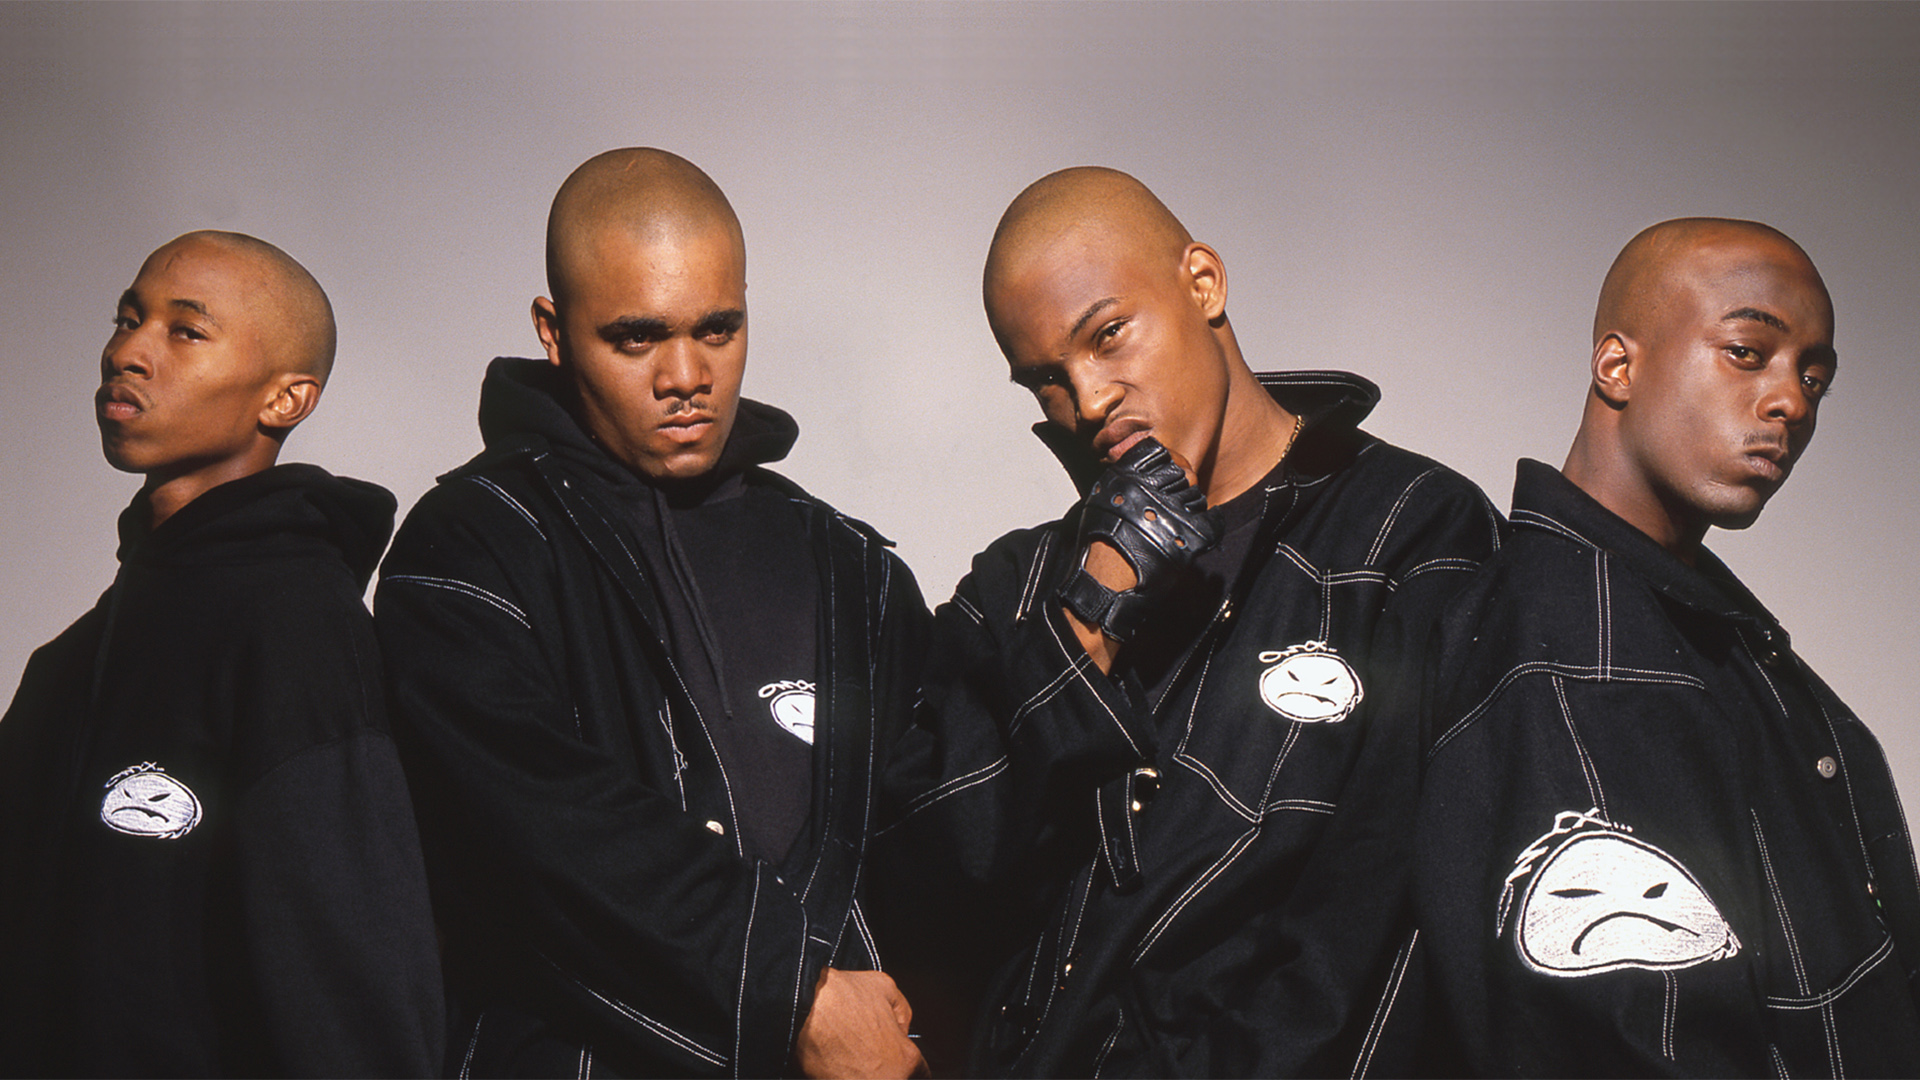 Image Gallery onyx rap group